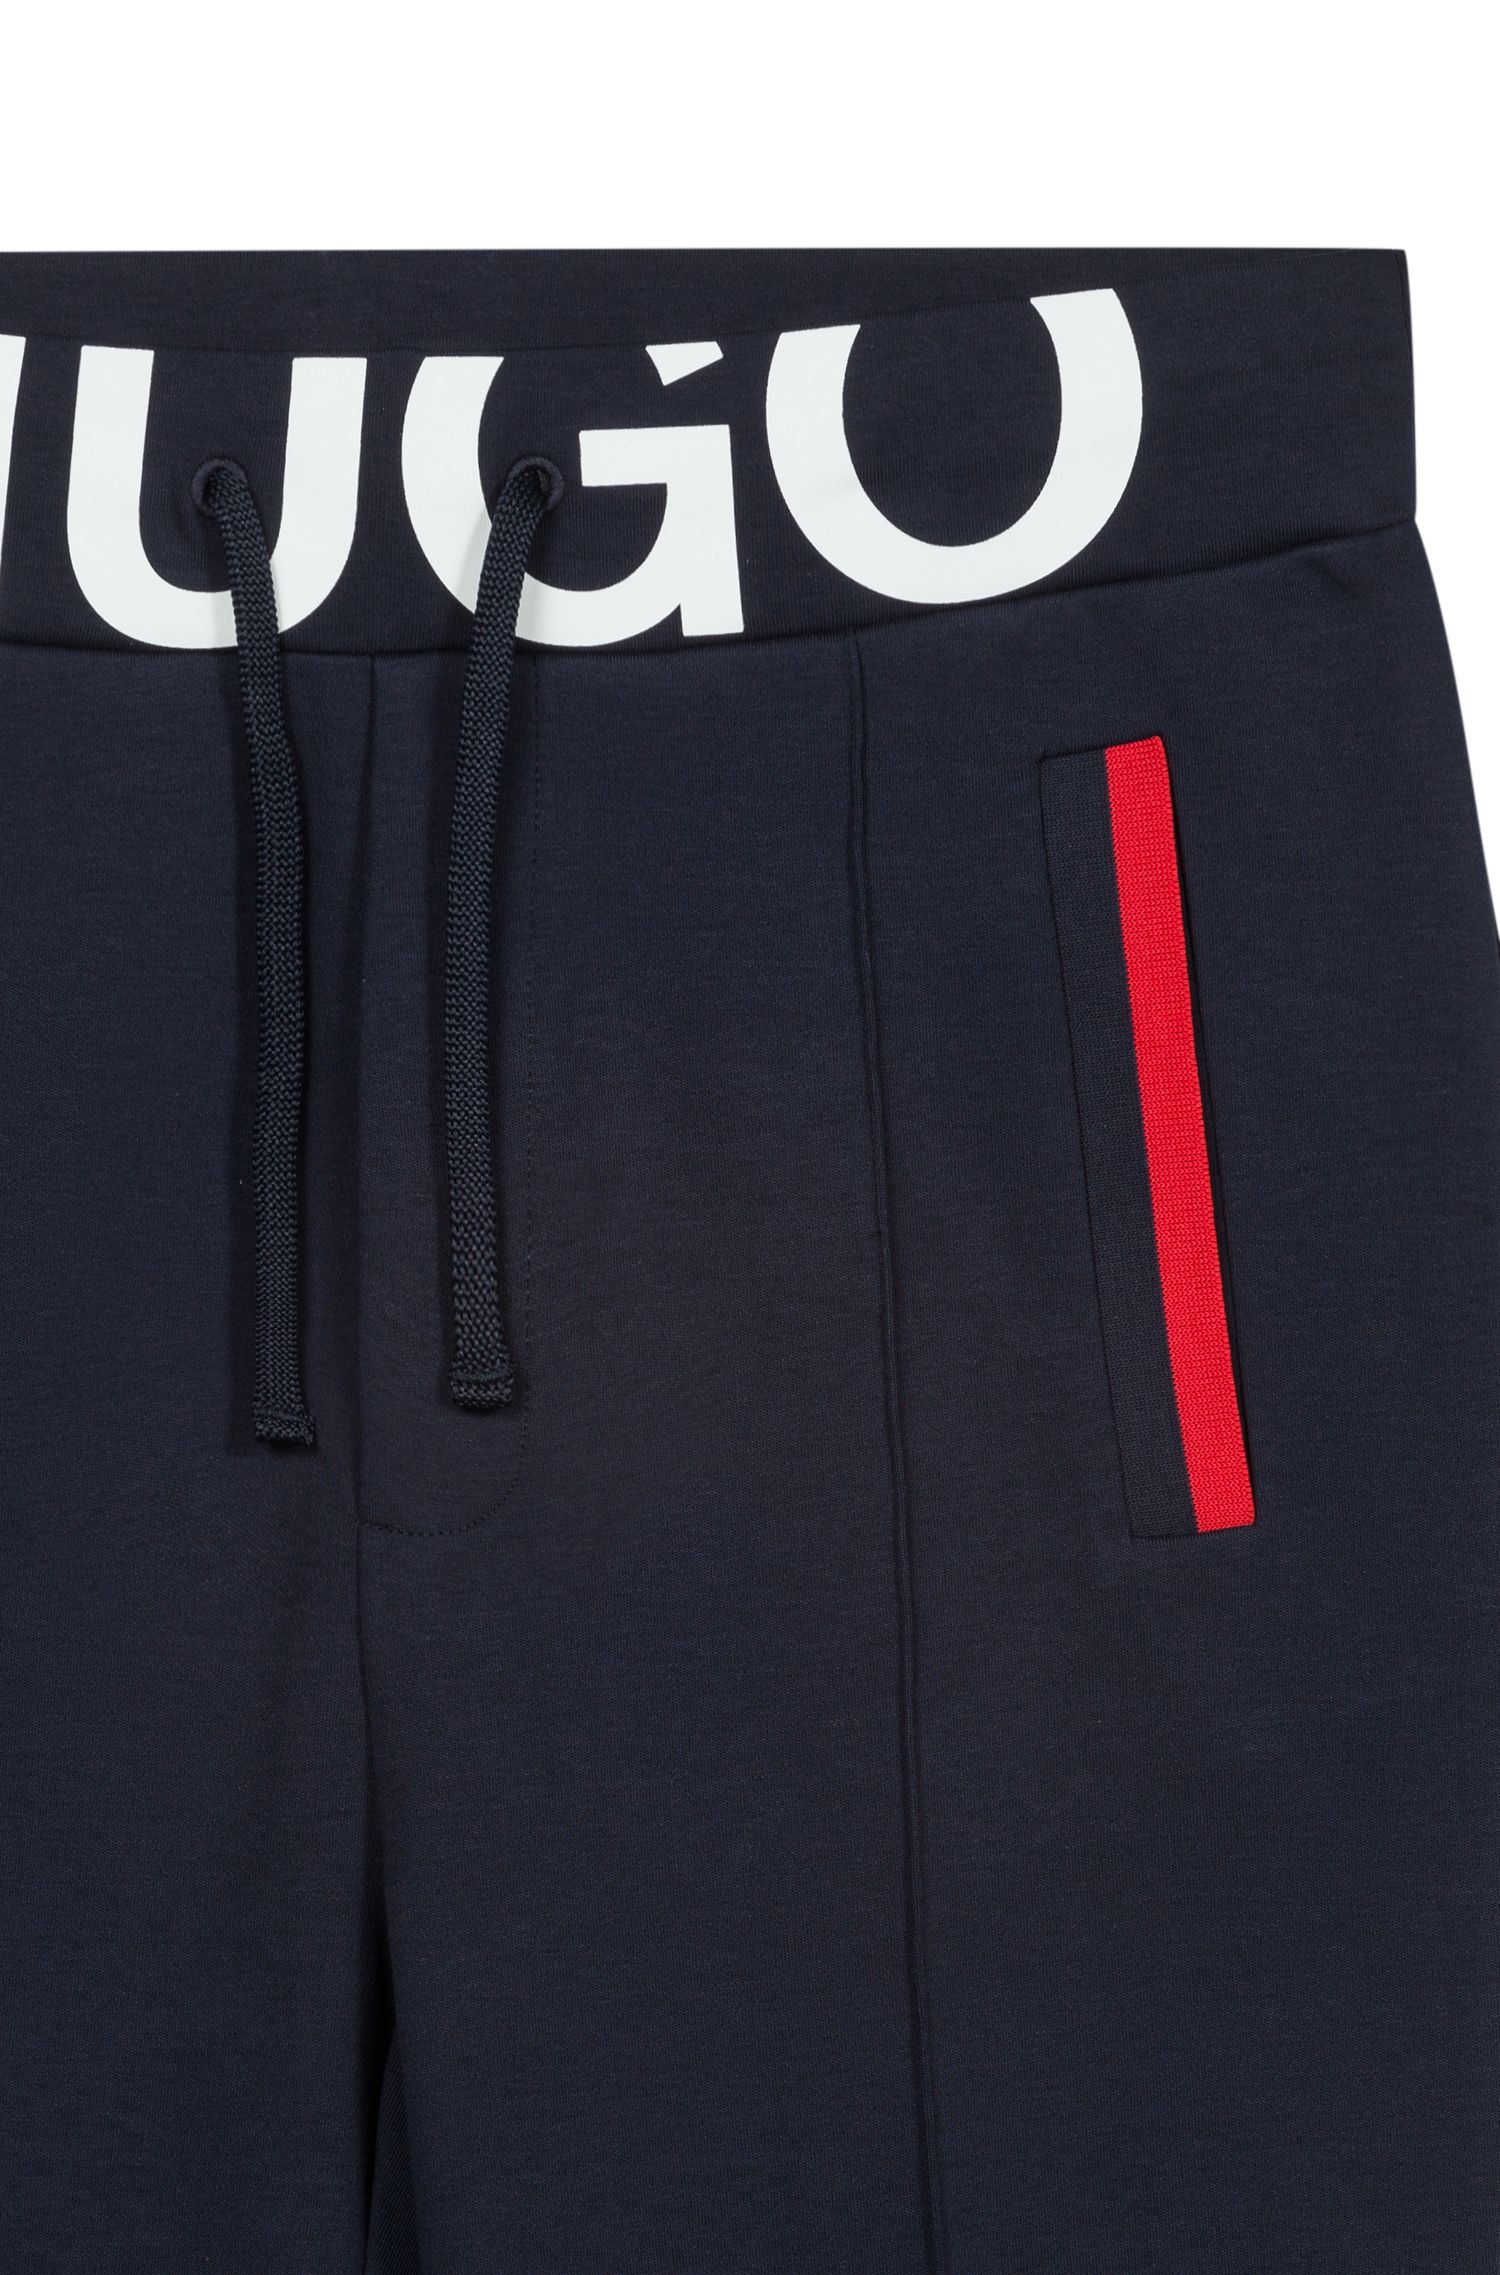 Hugo Boss - Slim-fit trousers in interlock cotton with logo waistband - 4